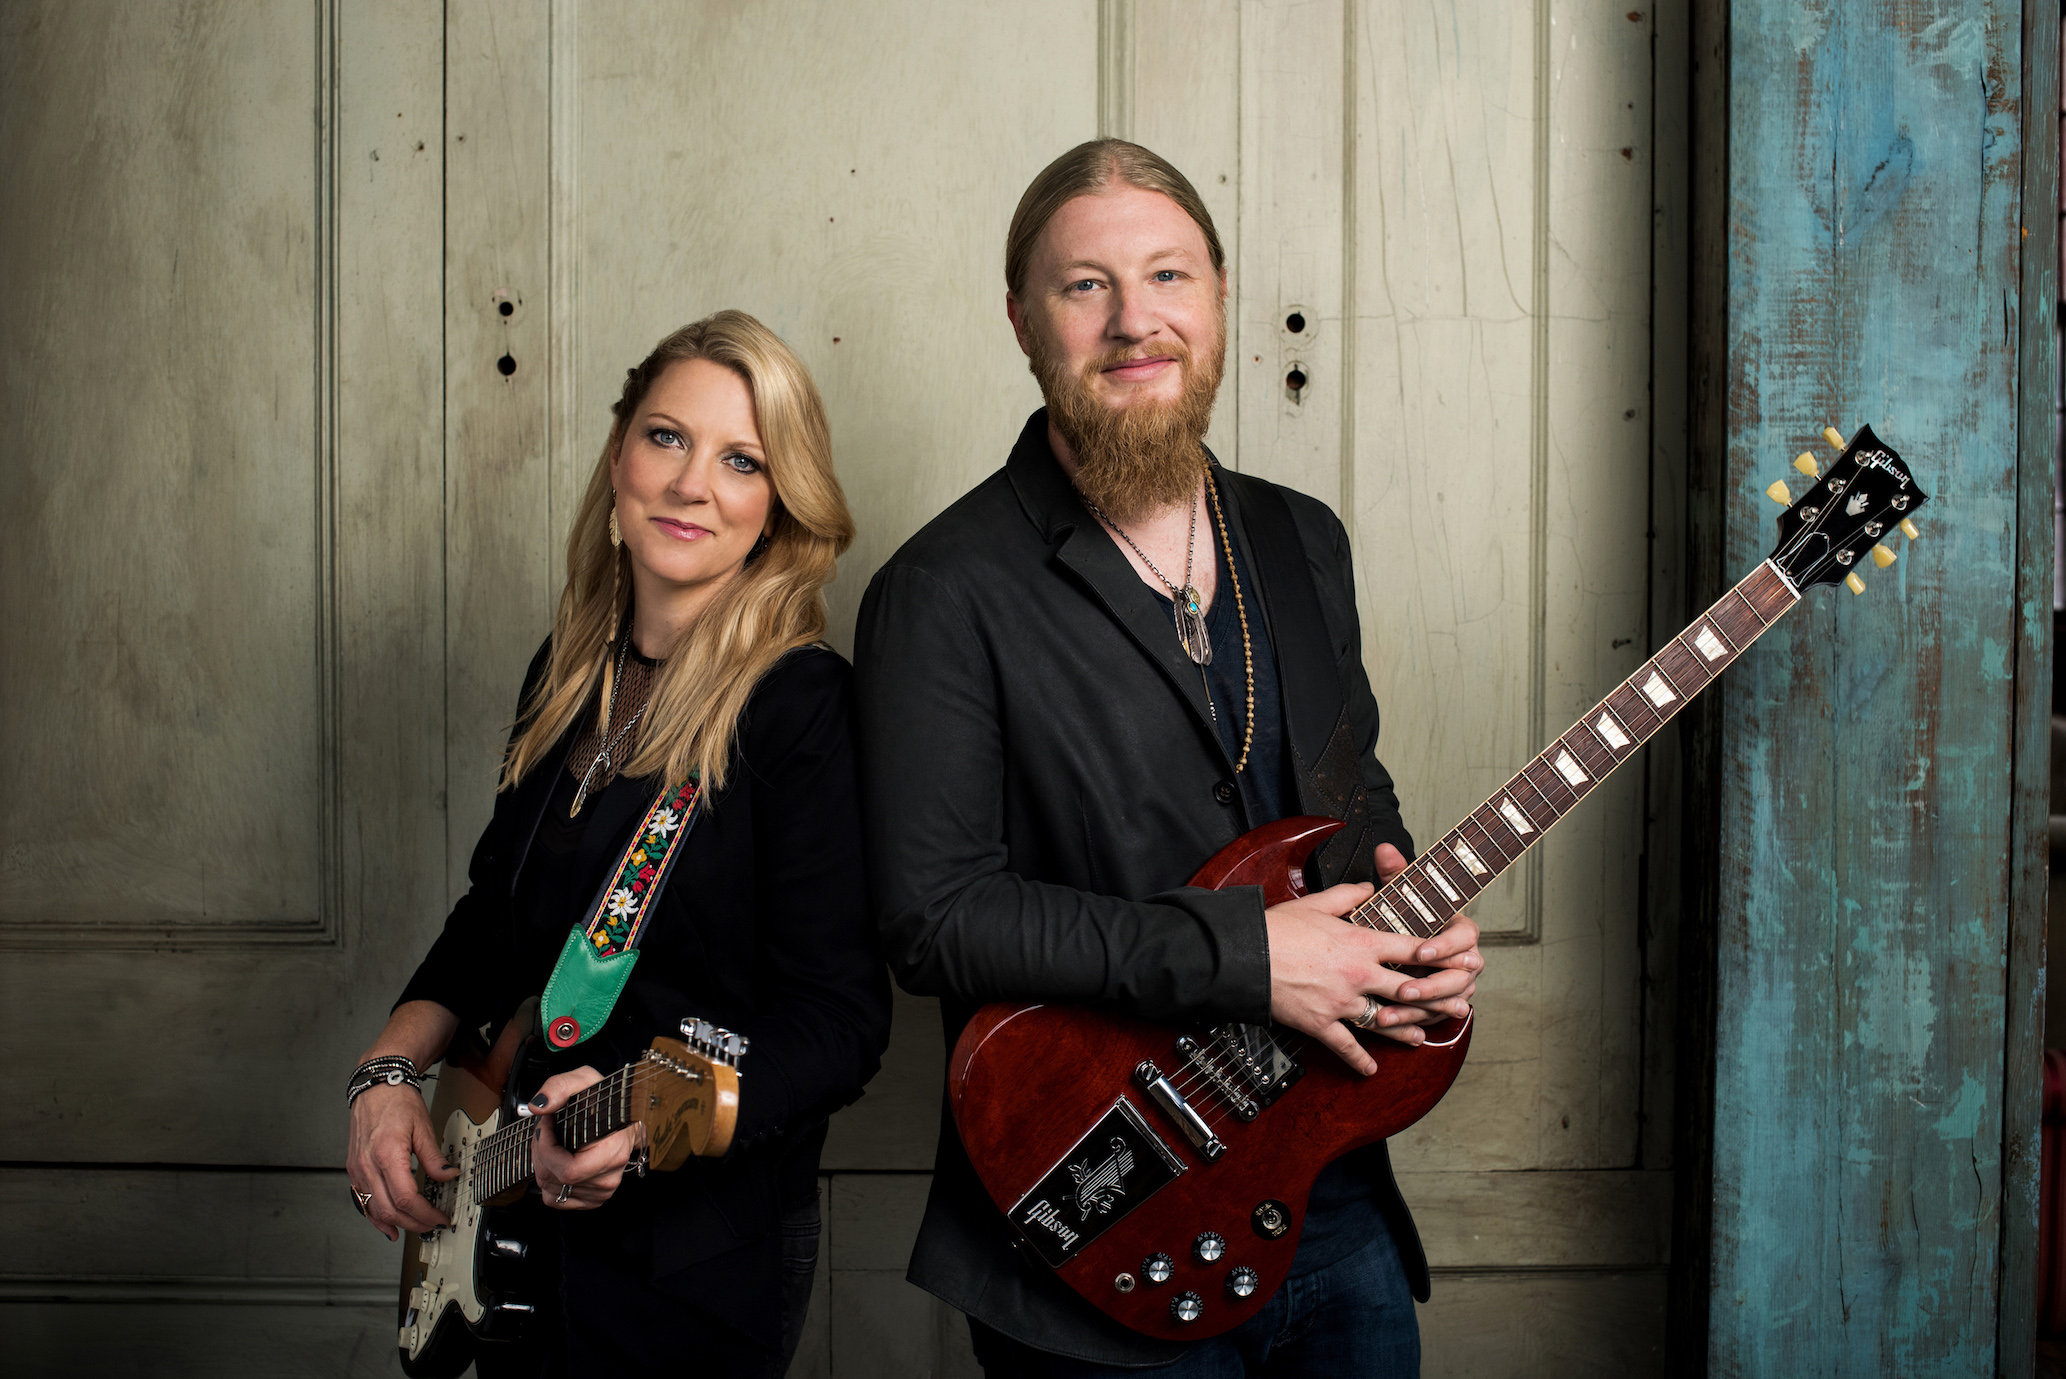 tedeschi trucks band 001 photo creditduo general 3